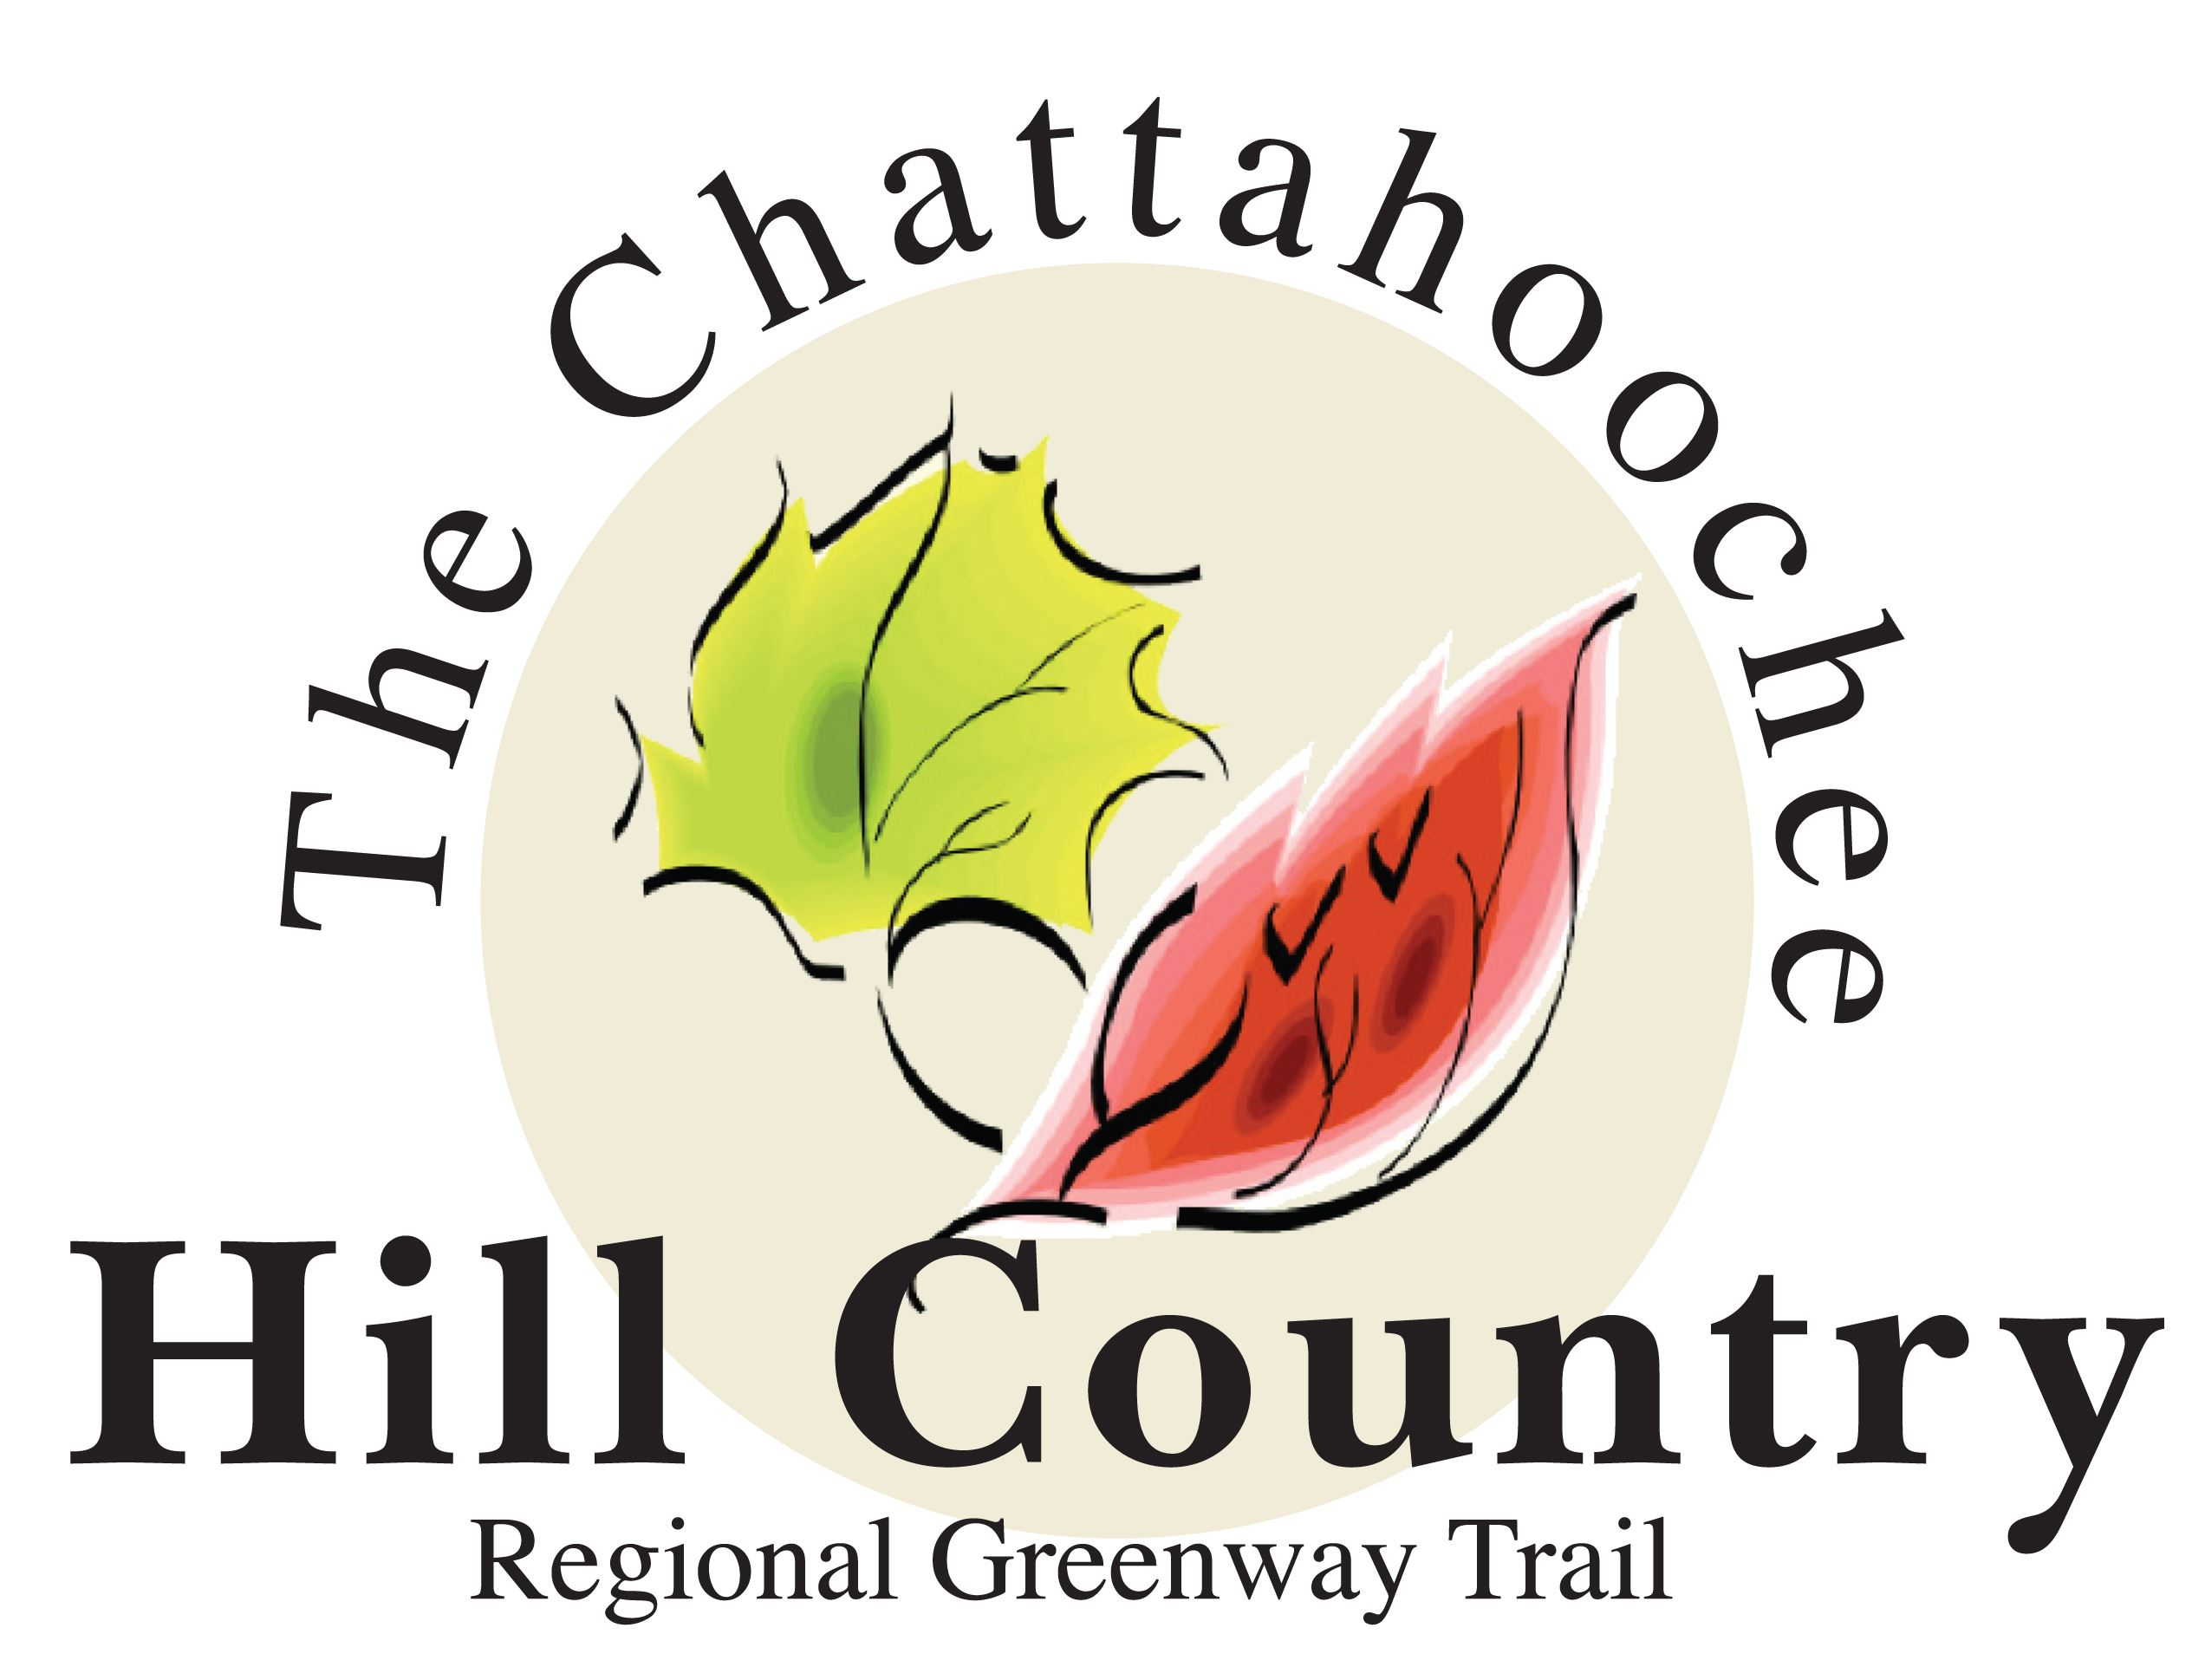 Chattahoochee Hill Country